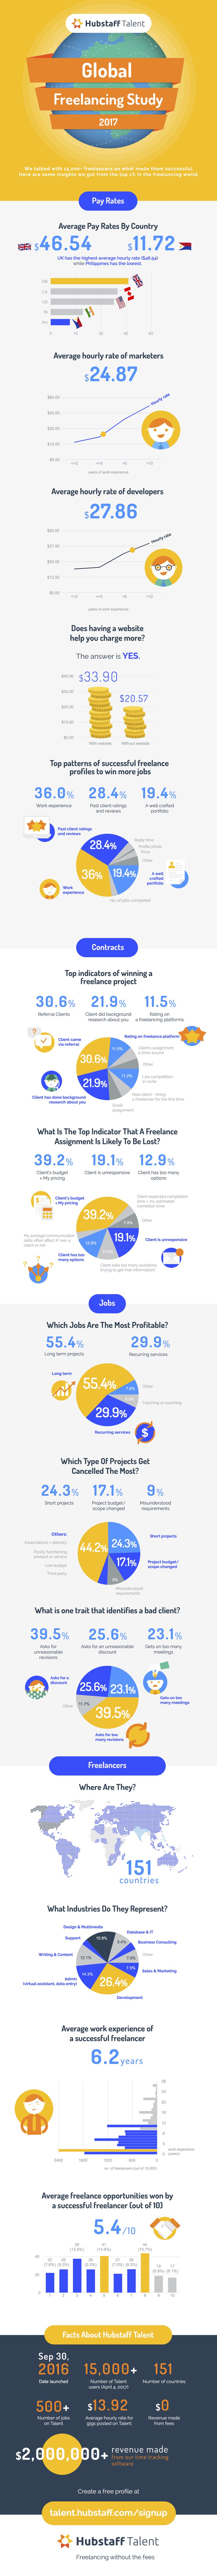 Hubstaff Talent's 2017 freelancing trends study infographic